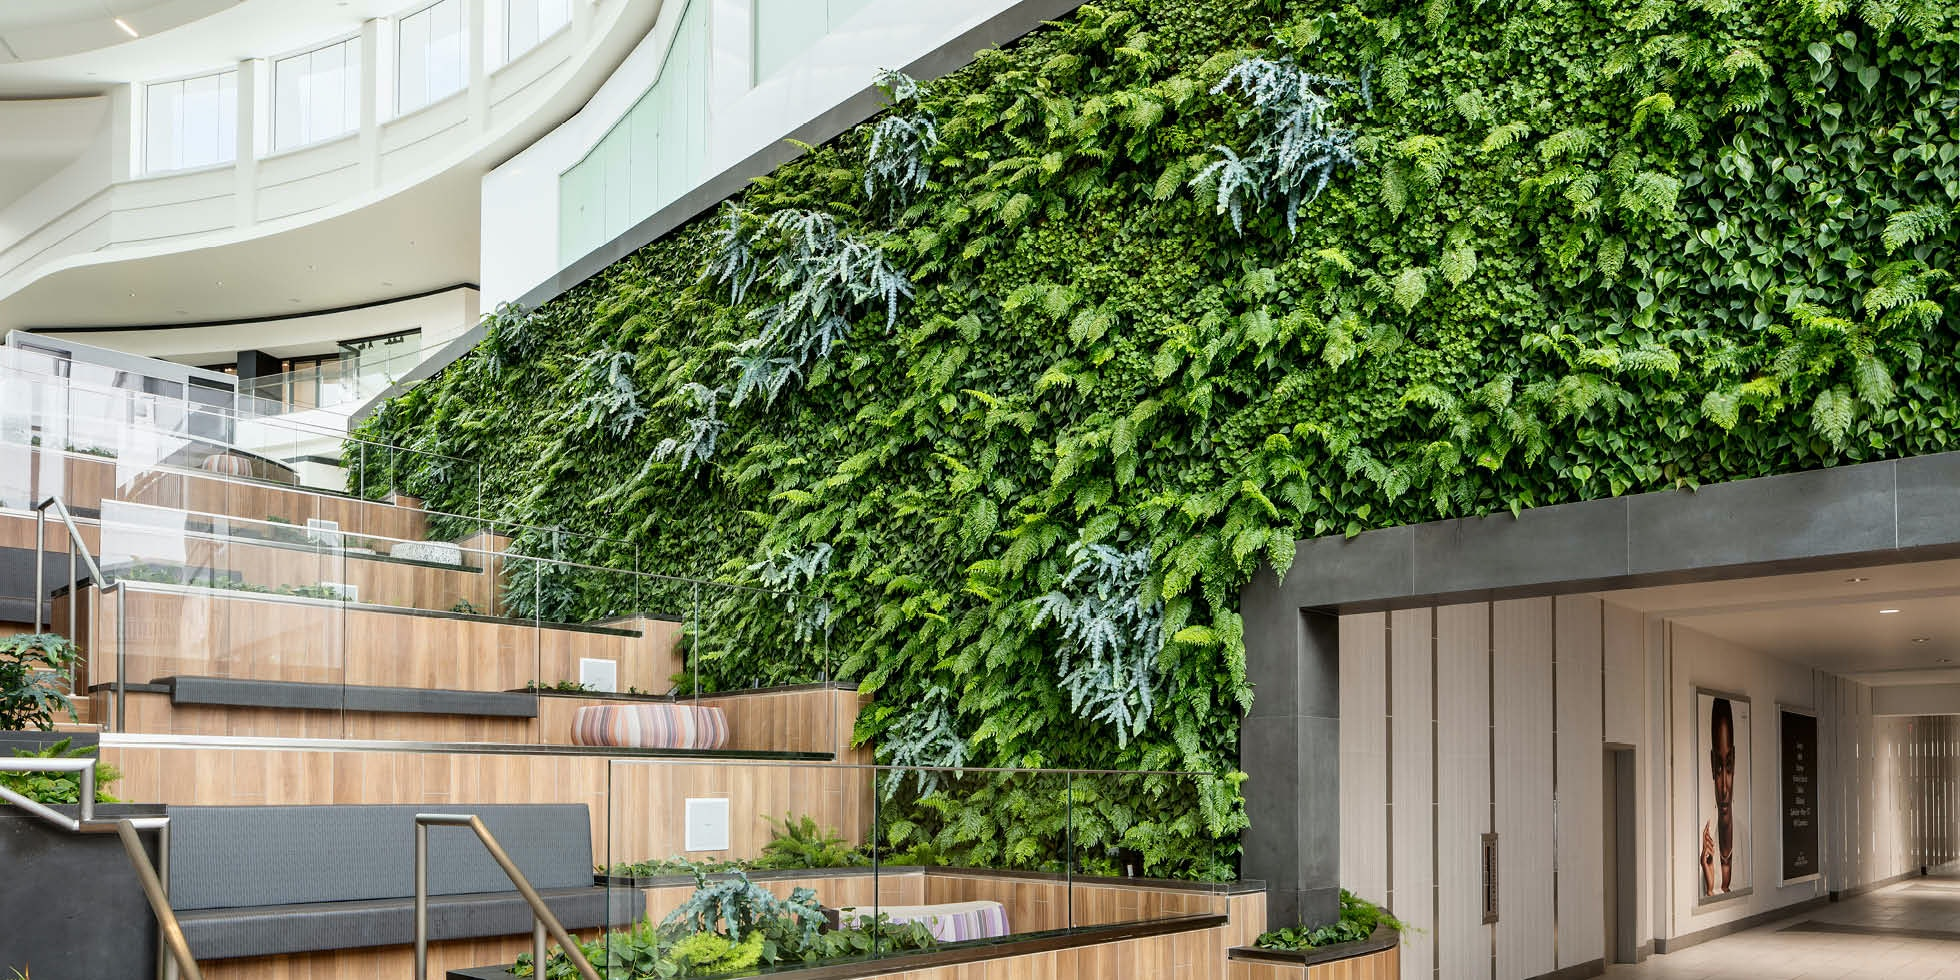 Growing Up: Specifying Living Walls for Every Architectural Typology